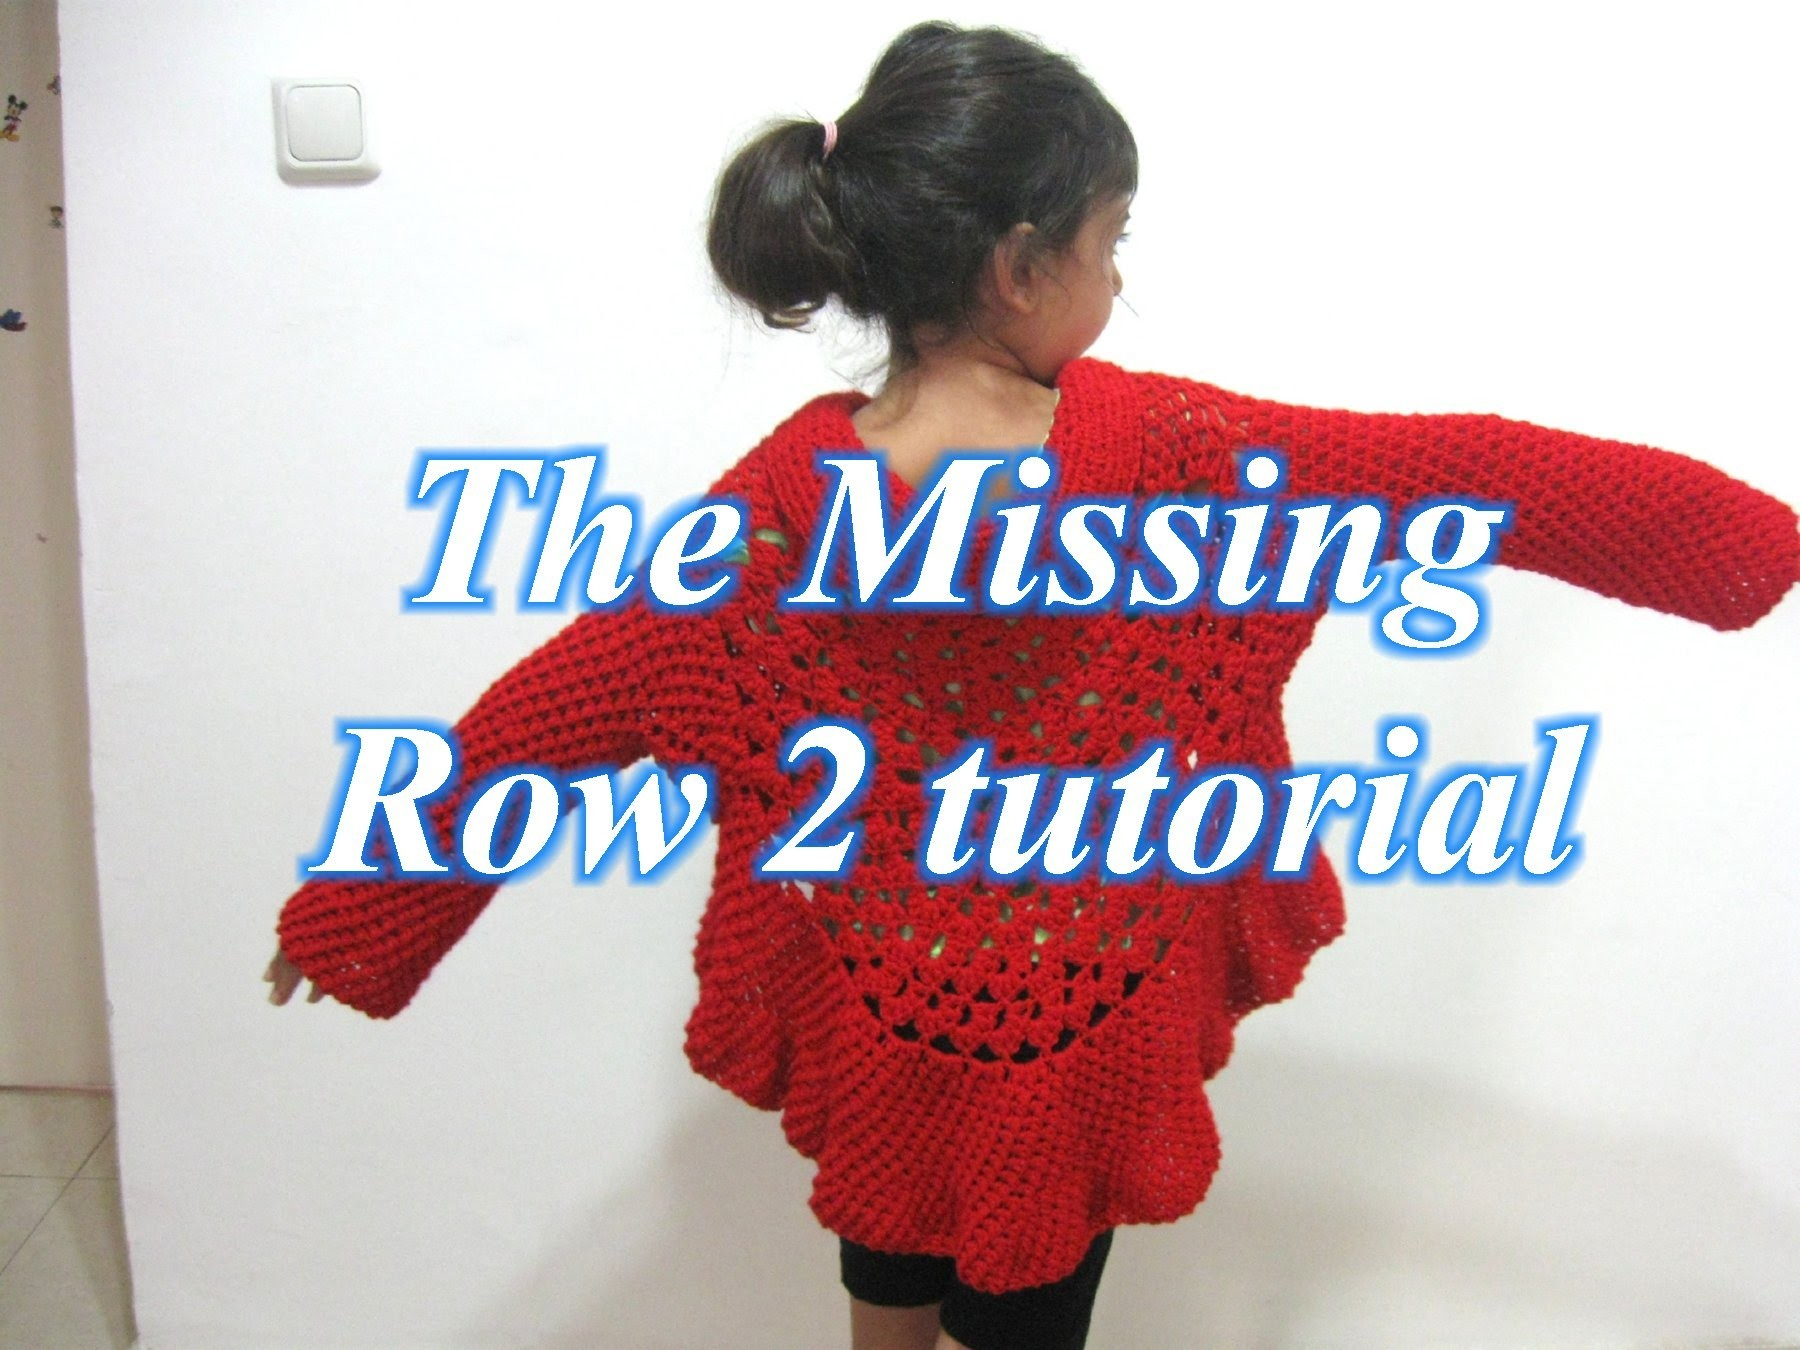 Butterfly Stitch Circular Jacket - Part 1 (Row 2) - Left Handed Crochet Tutorial